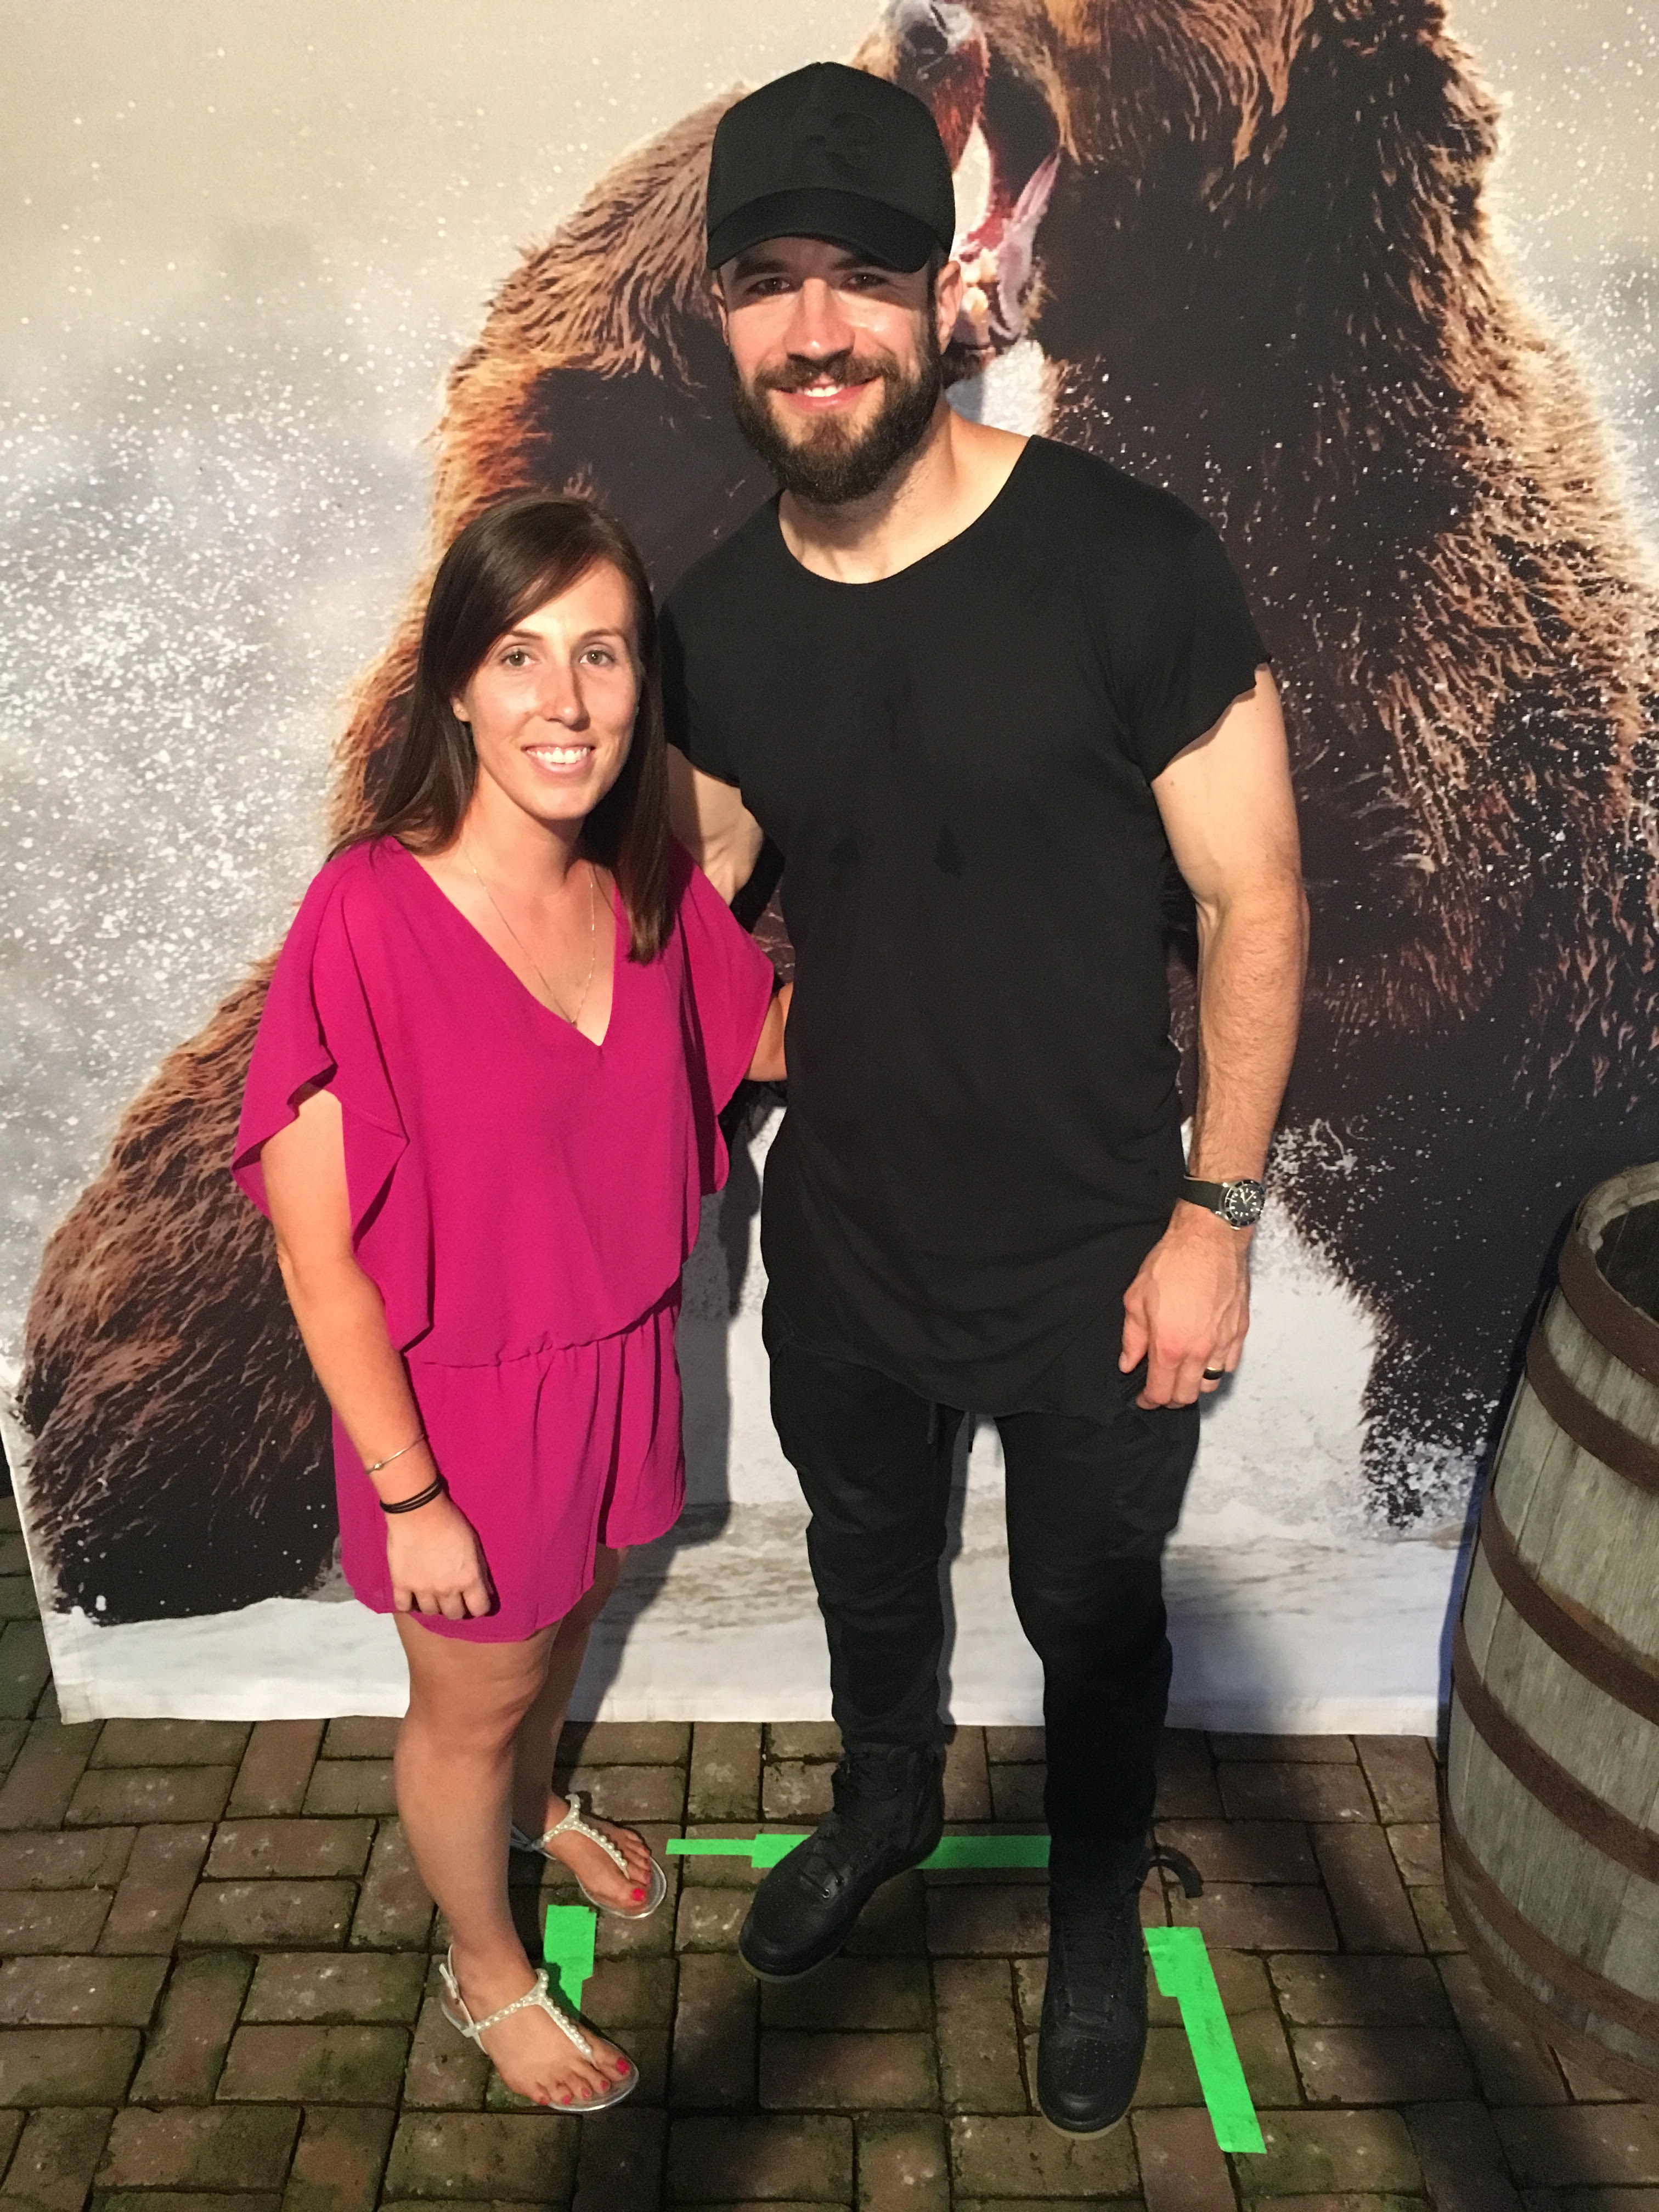 Sam hunt meet greet sweepstakes musictoday win a meet and greet with sam hunt at a show of their choosing three lucky runner up winners also received tour merchandise bundles m4hsunfo